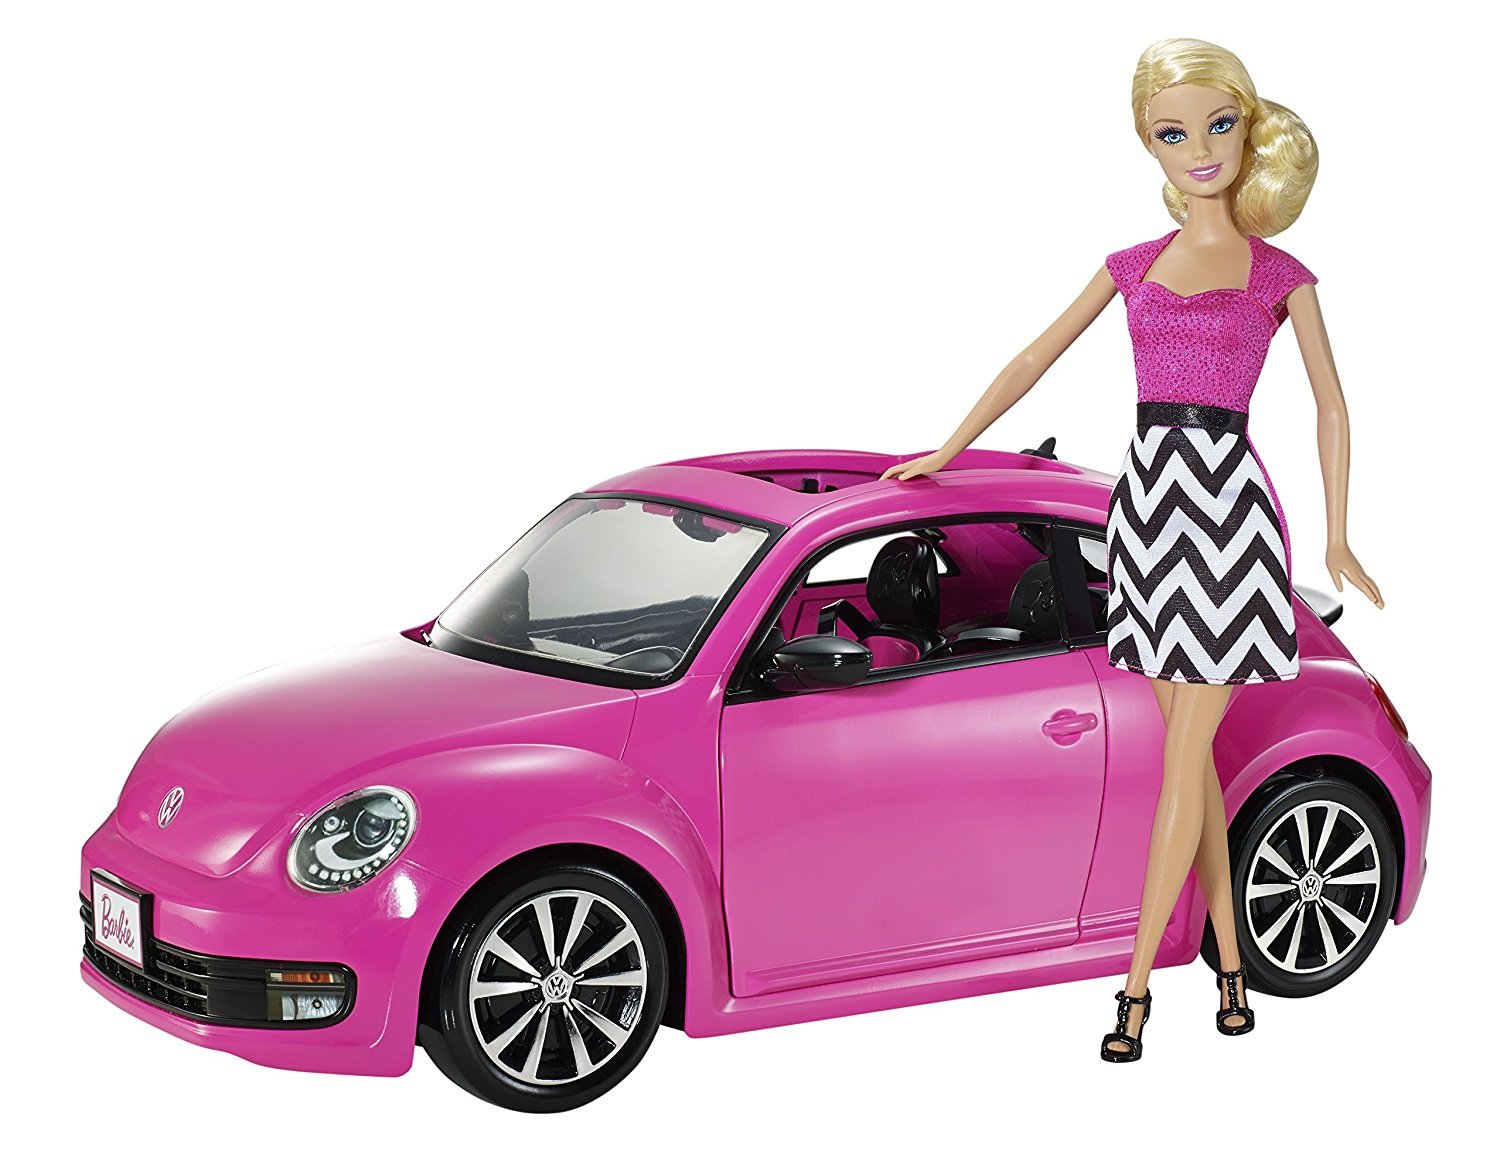 light your blue for post image wallpaper pink vw picture car choice beetle cool wallpapers volkswagen